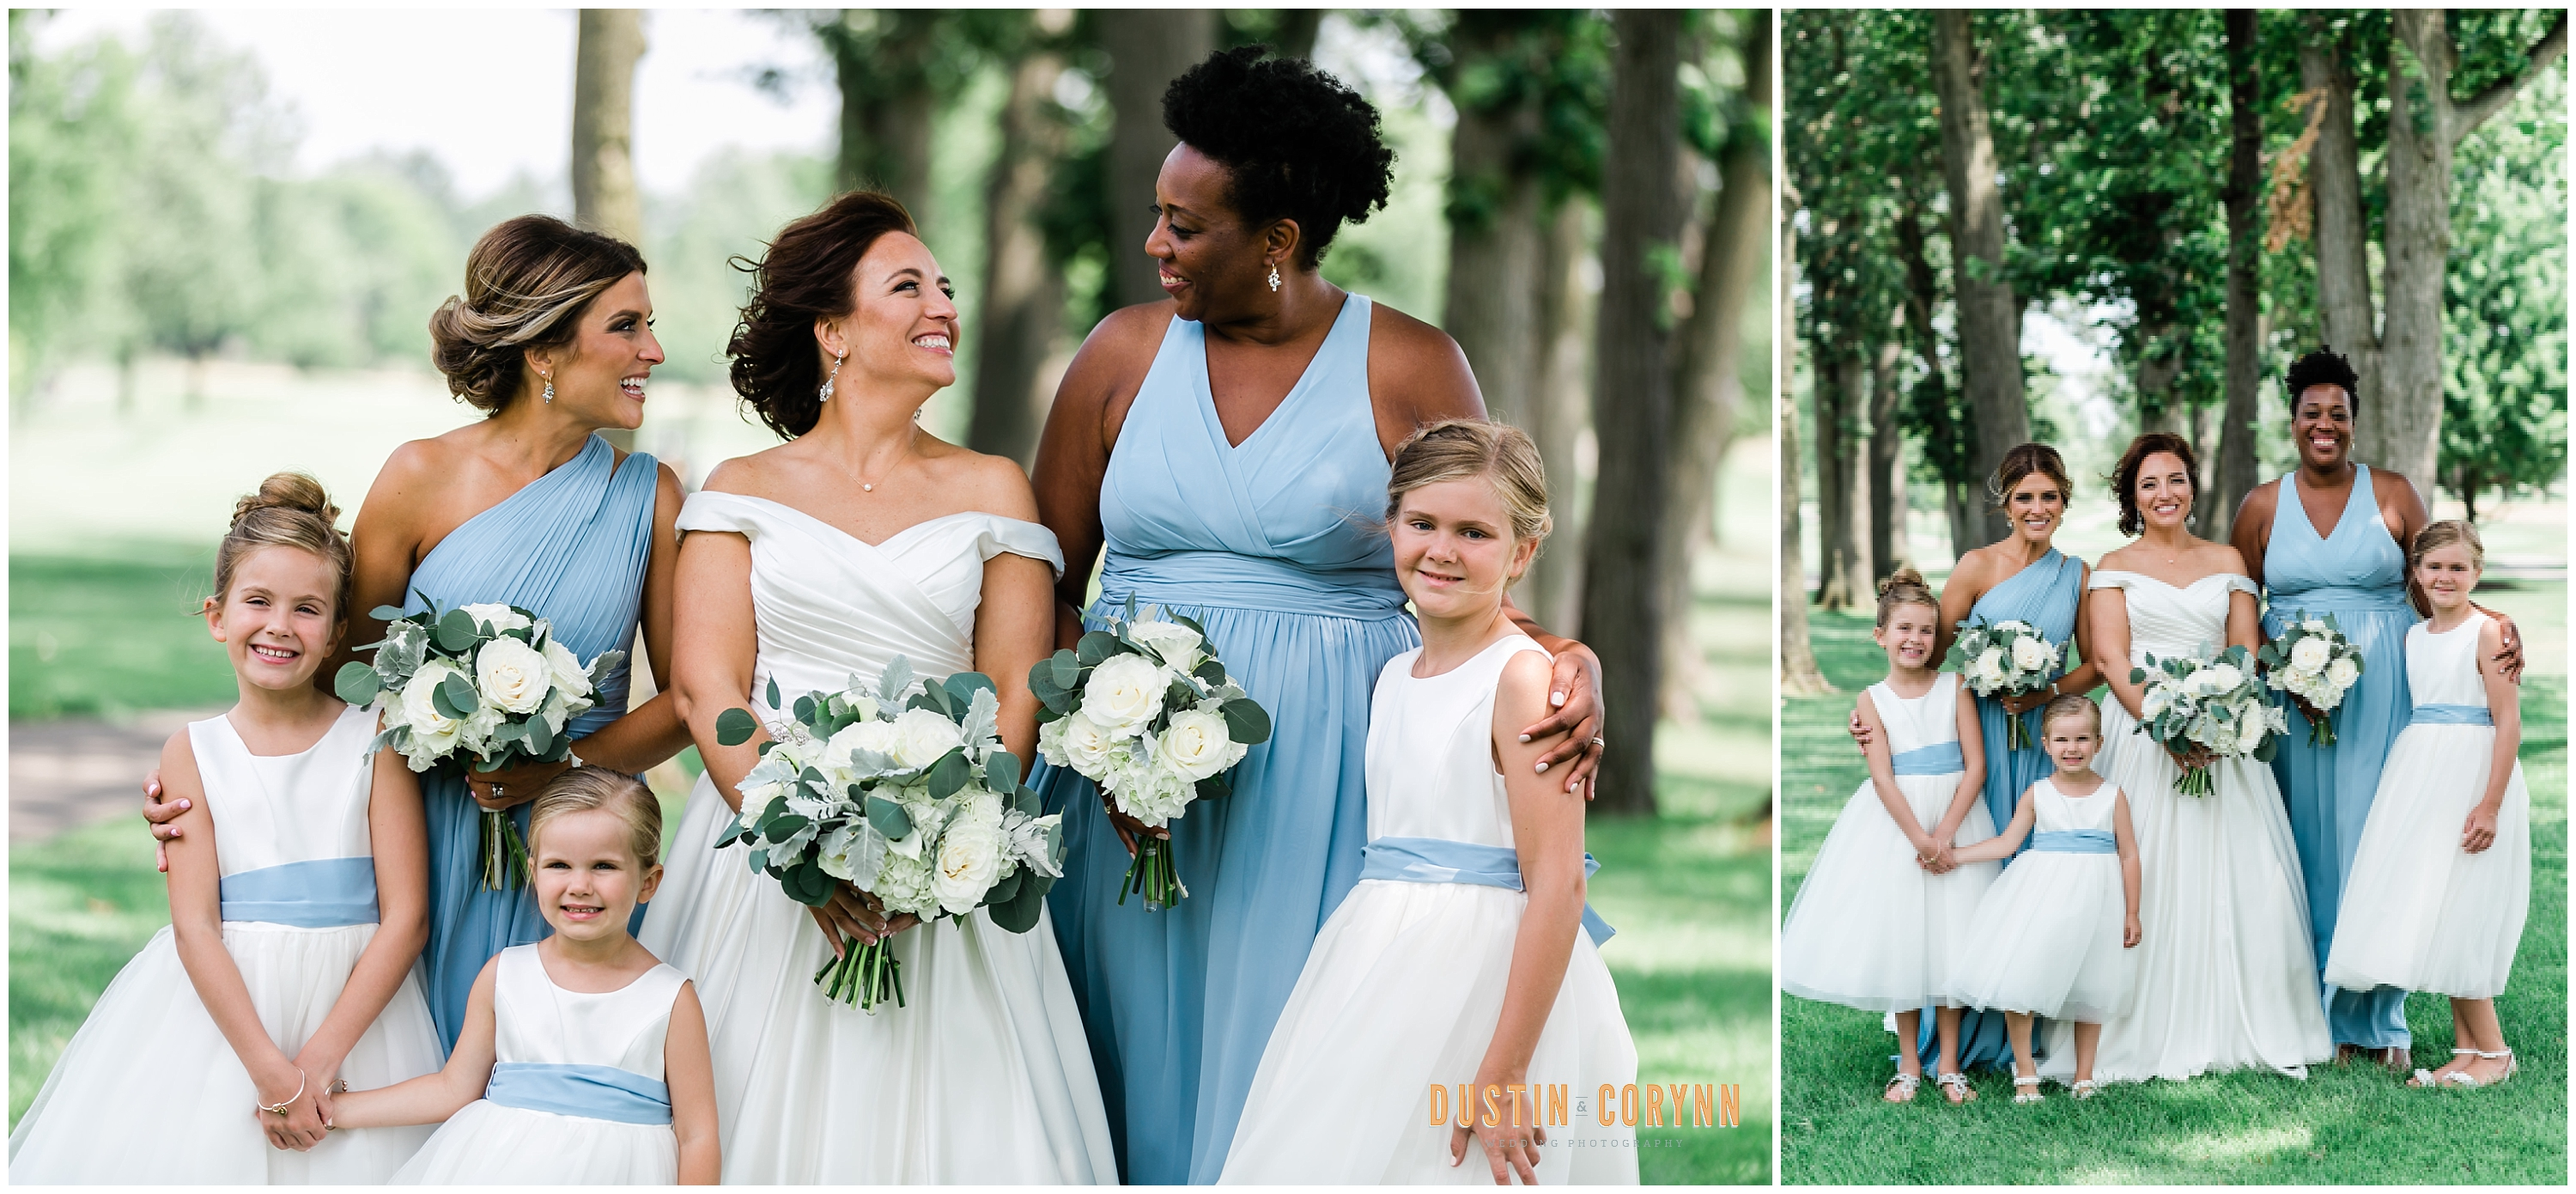 Bride, Bridesmaids, and Flower Girls at Pine Valley Country Club Wedding